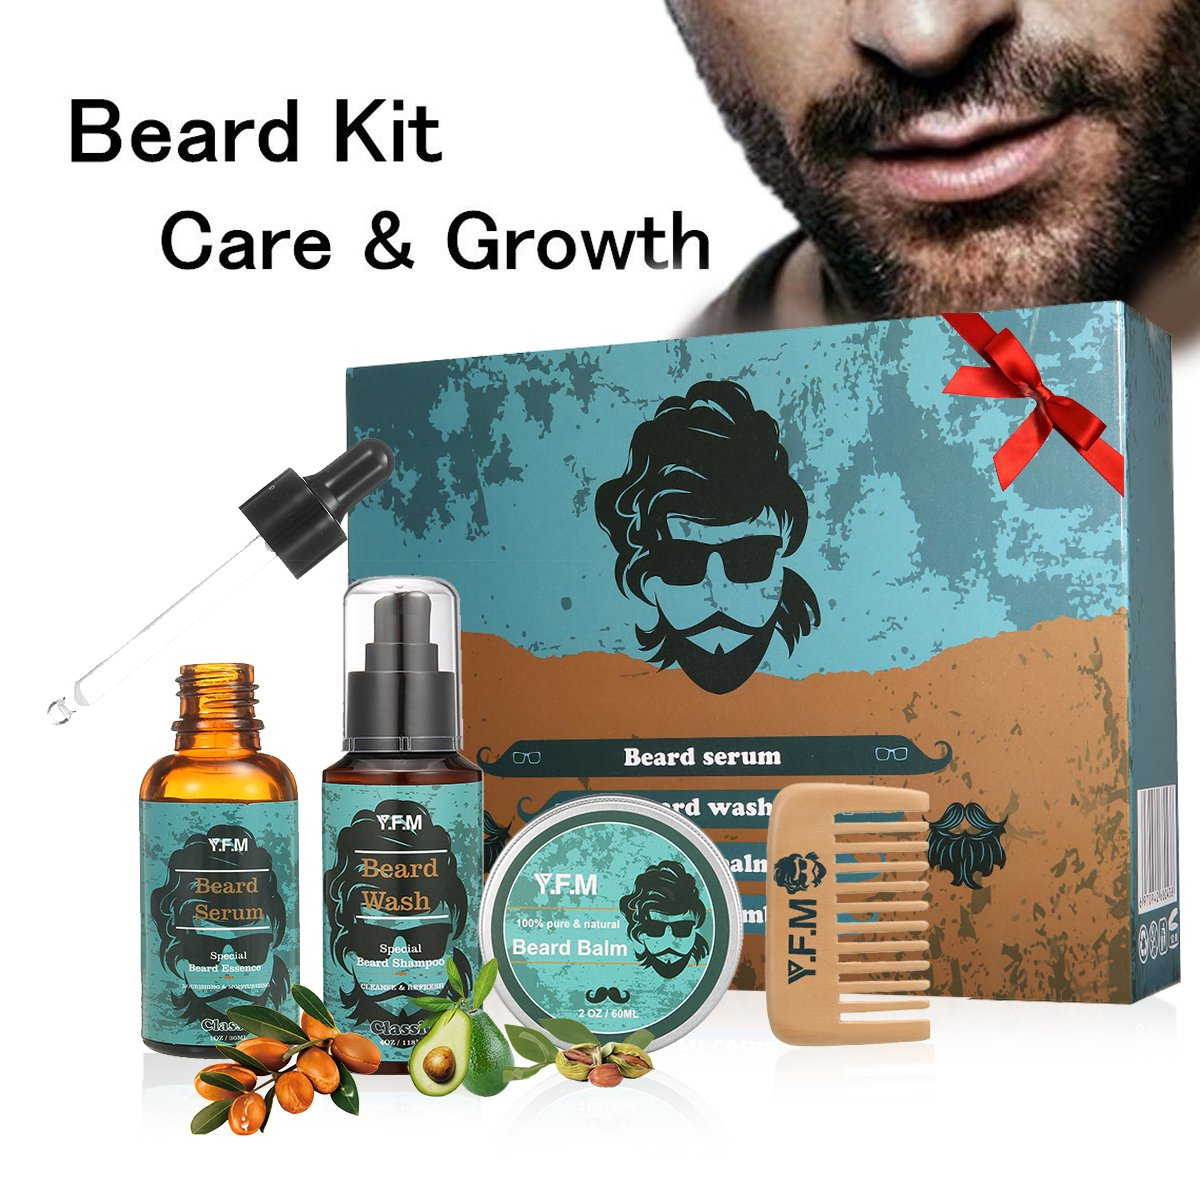 Beard Grooming Kit Luckyfine Ultimate Beard Care and Moustache Care Gift Set Includes:Beard Shampoo, Beard Serum, Beard Balm and Beard Comb-Great Gift for Birthday,Father's Day,Dad and Boyfriend Father's Day